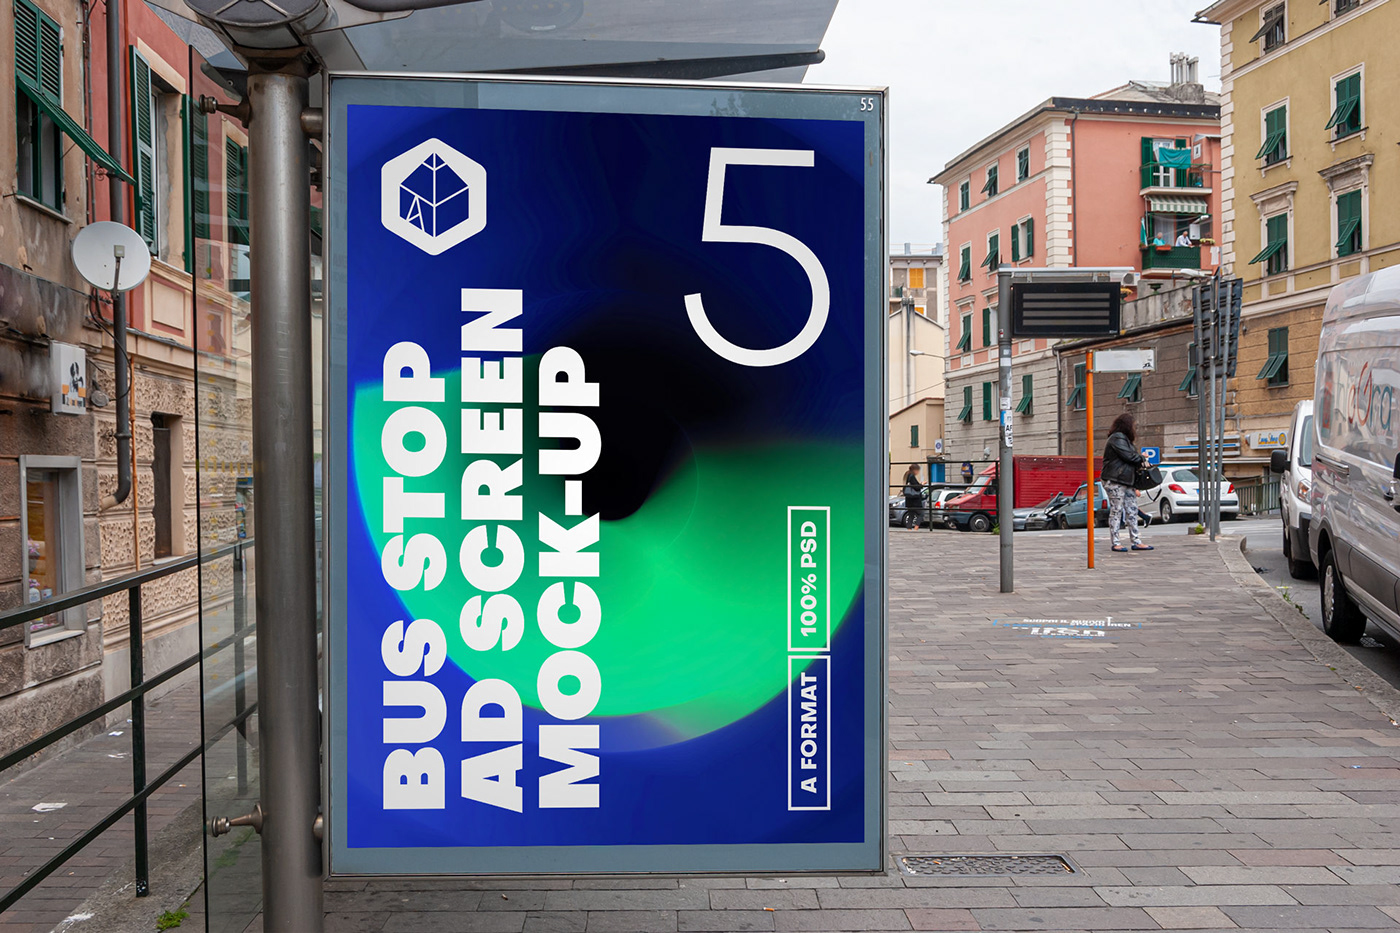 ad Advertising  bus BusStop mock-up Mockup poster screen STATION Street